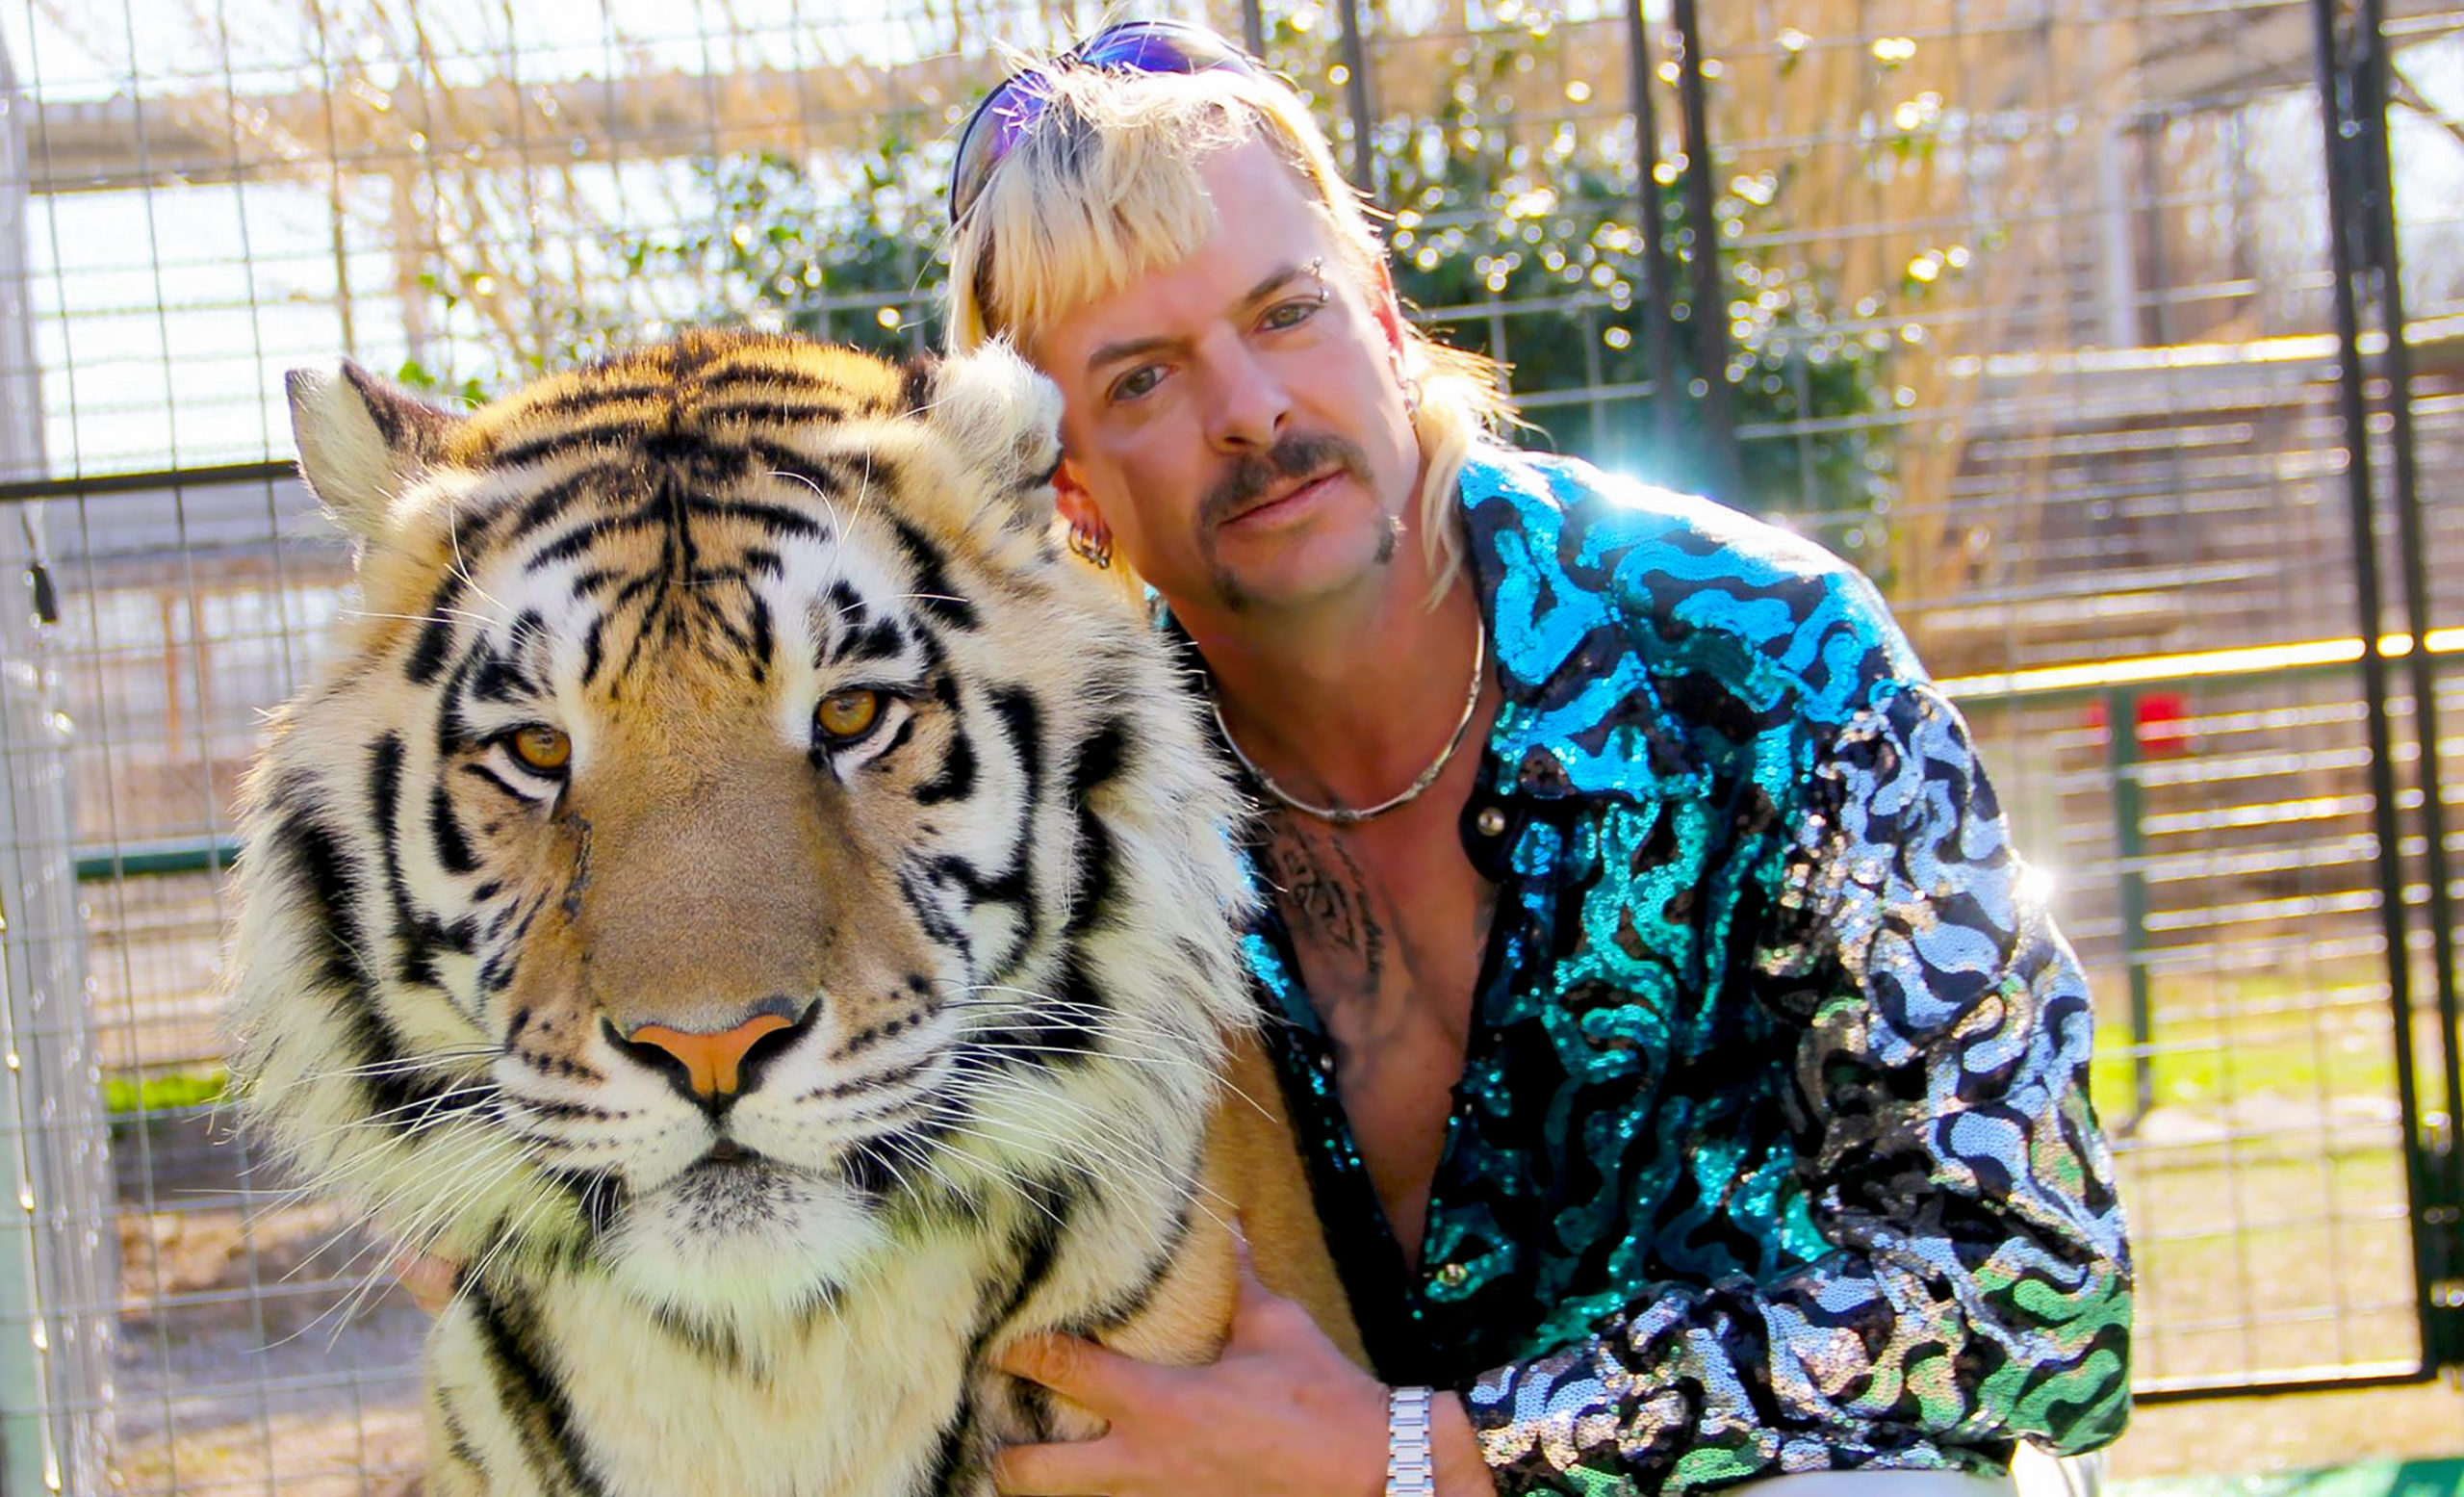 Tiger King: Netflix crime doc based on 'gun-toting gay redneck' Joe Exotic